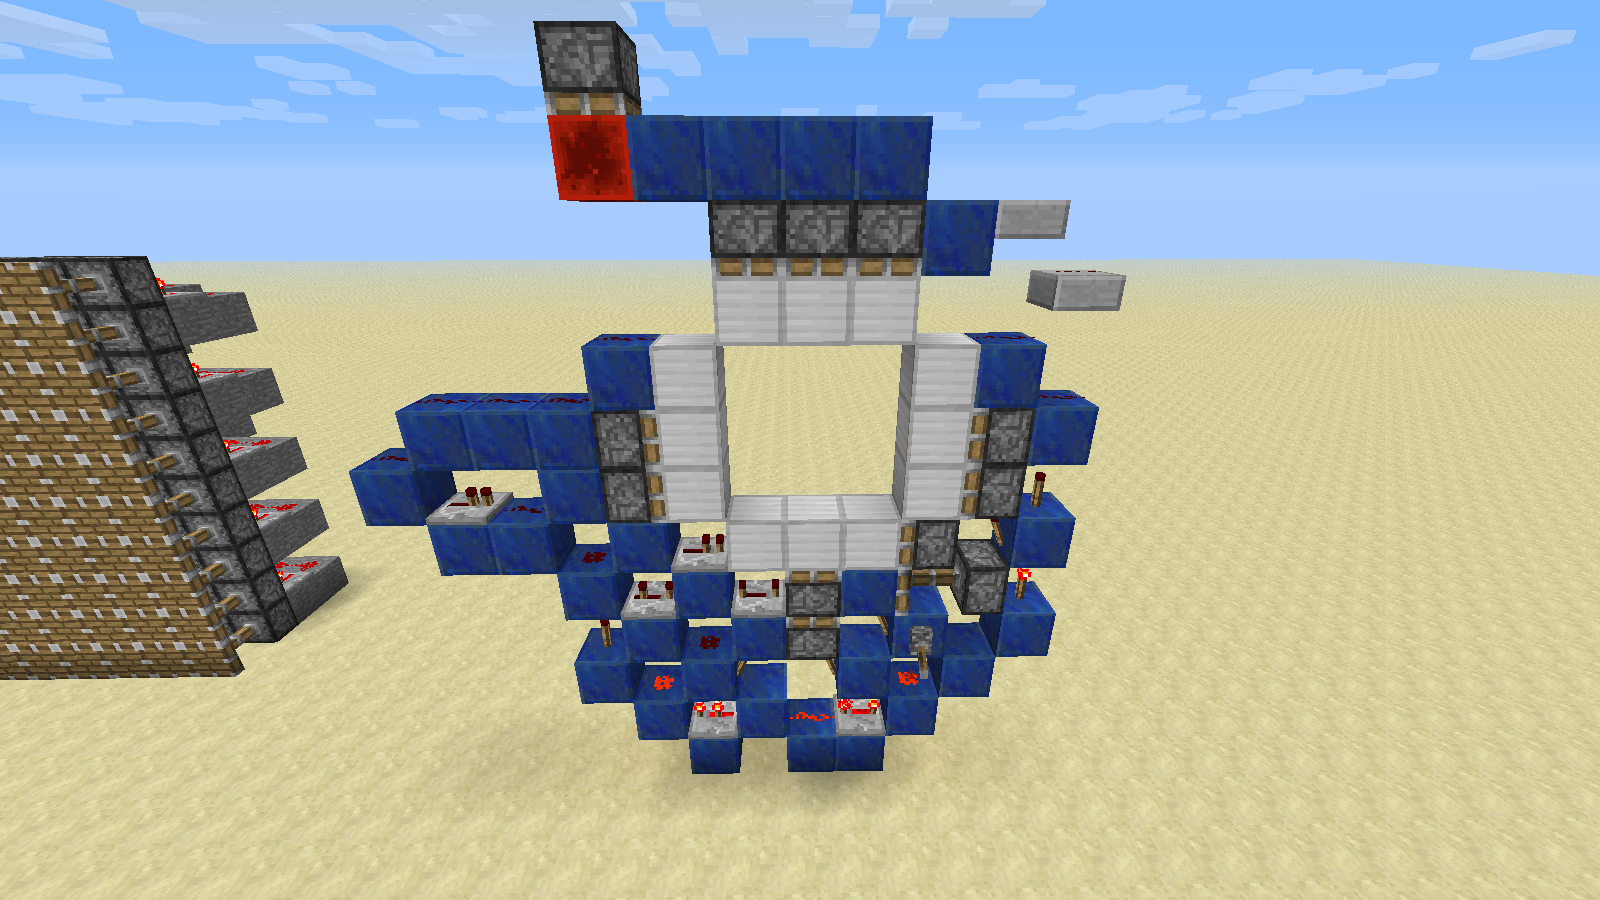 MC 108] Droppers, Dispensers and Pistons activate when